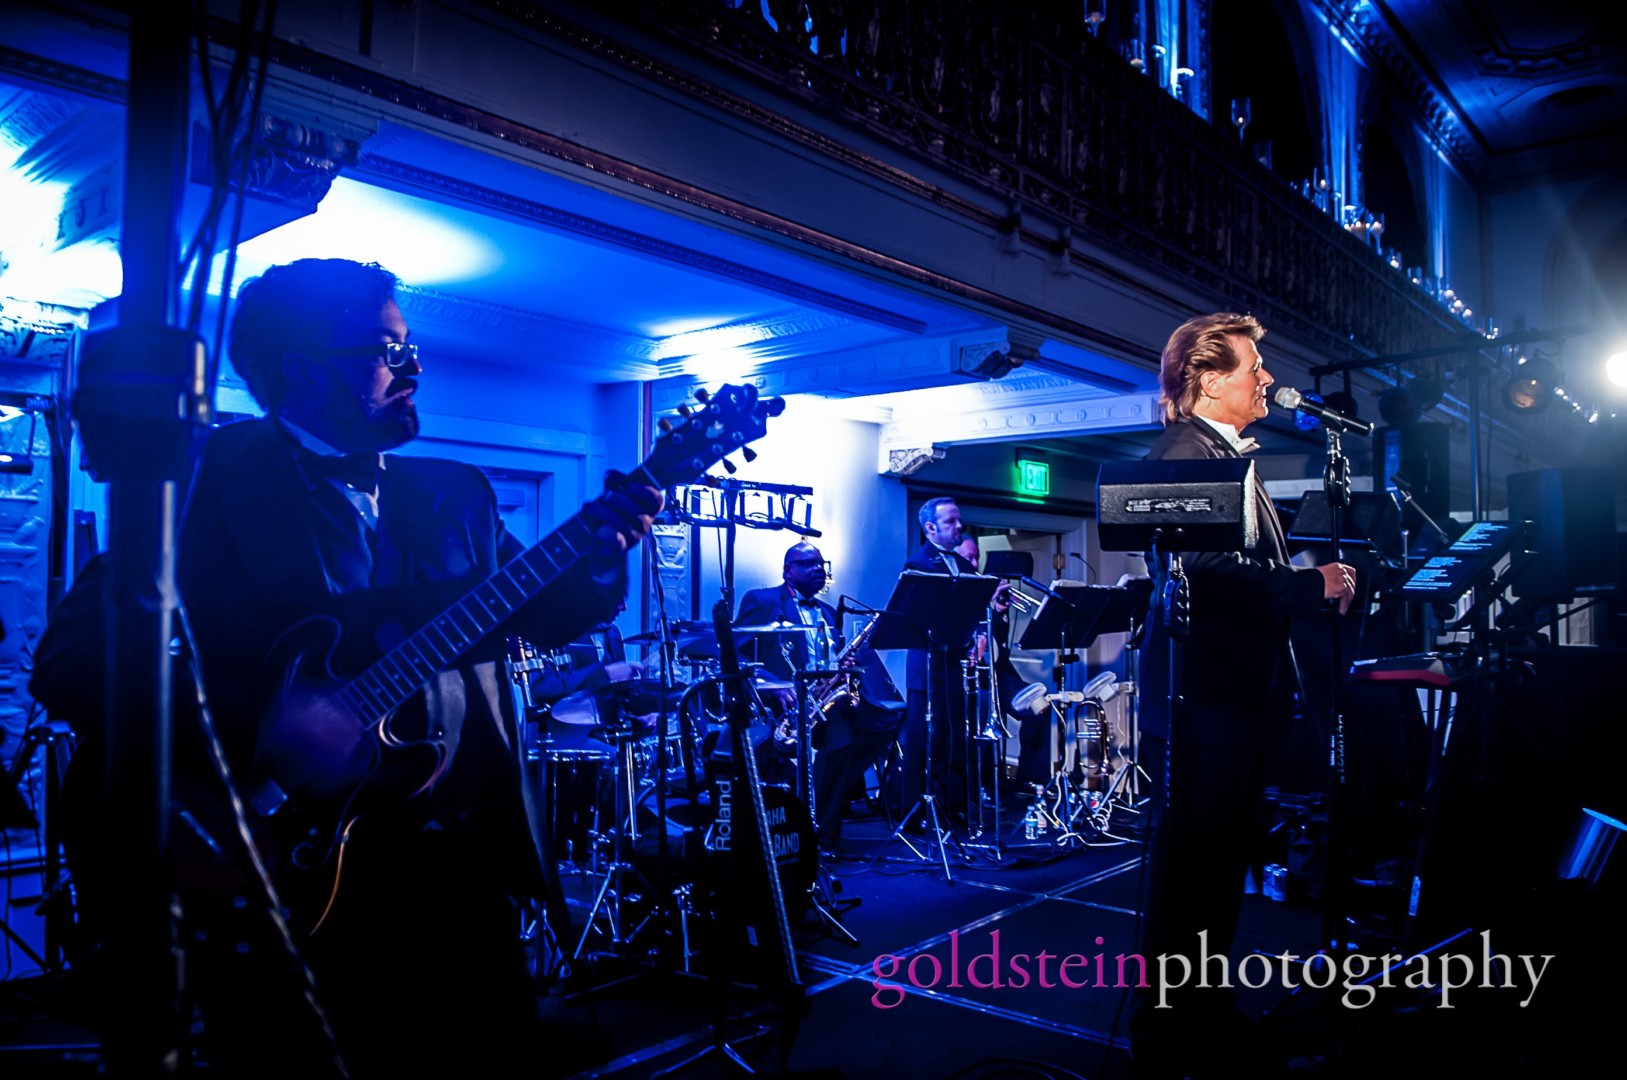 John Parker Band performing on stage at Luxury Hotel Wedding